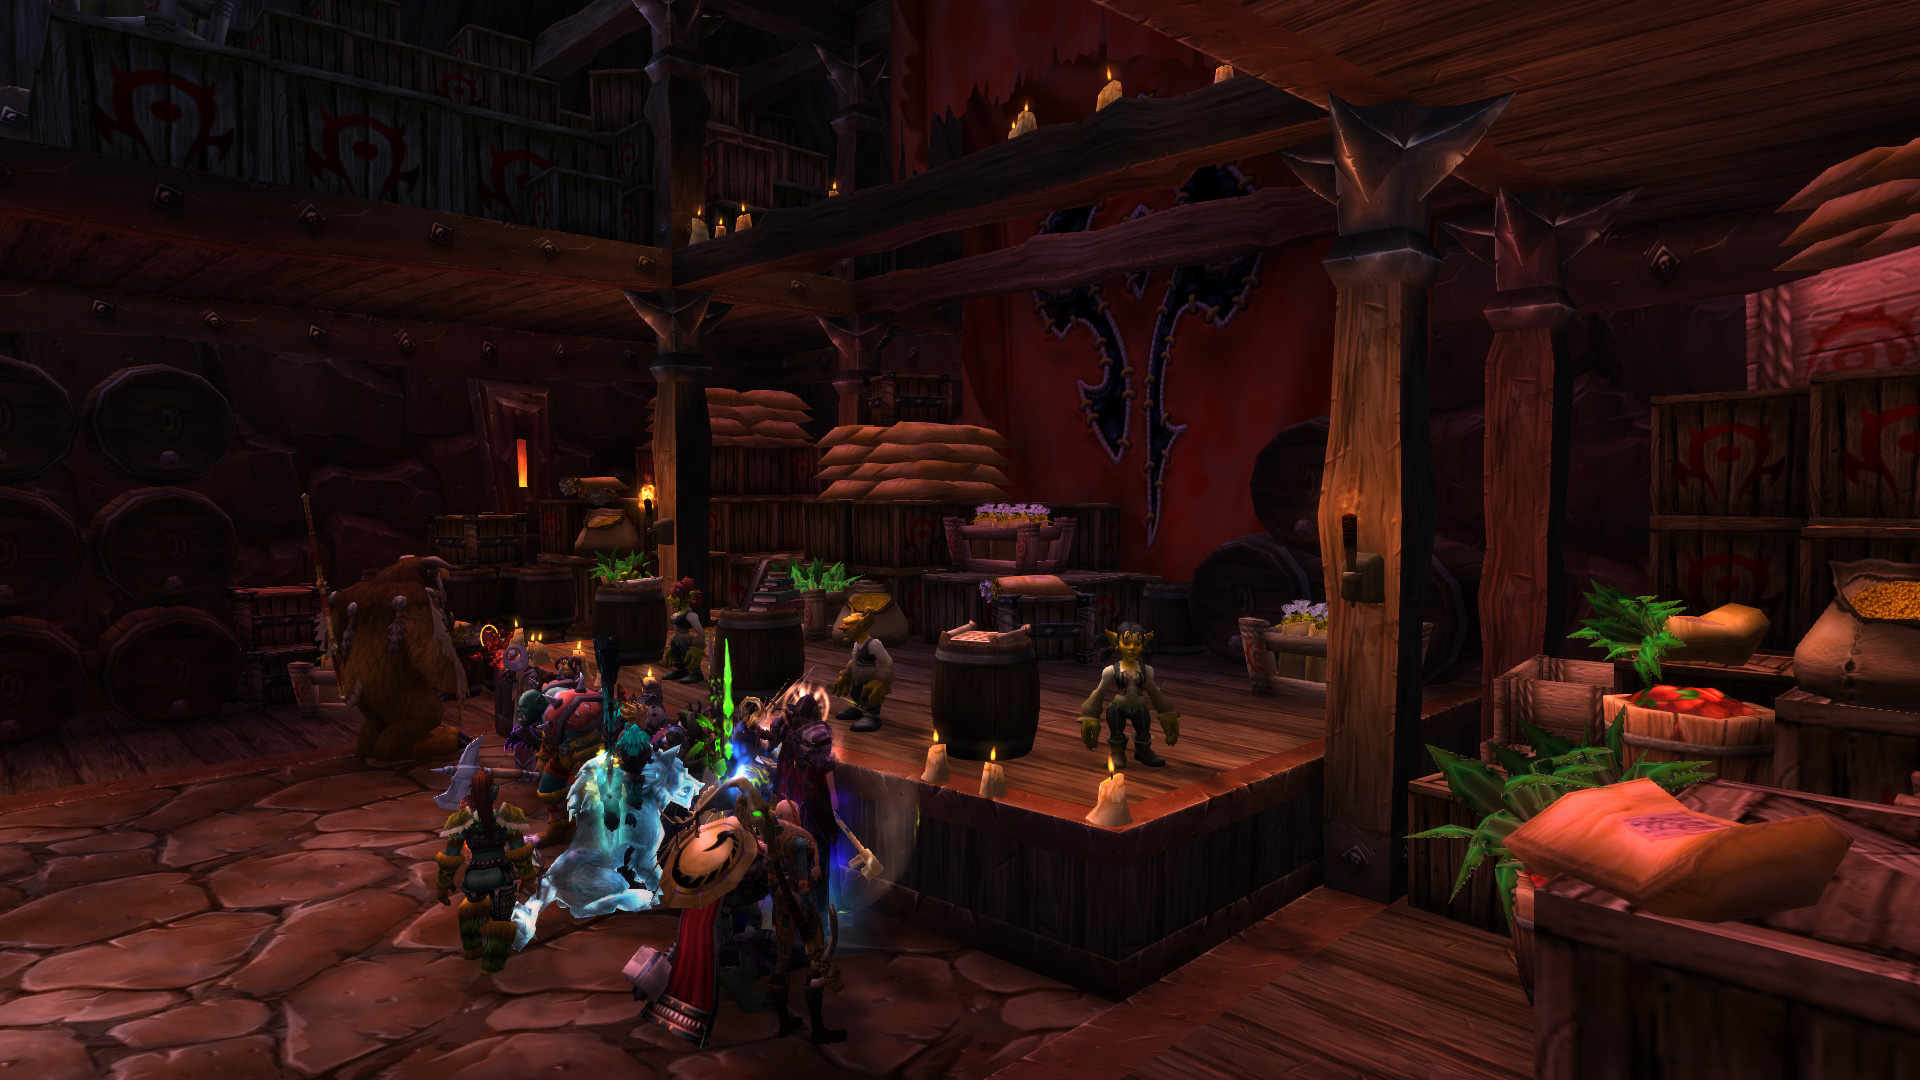 Patch 7.2.5   Auction House Dance Studio Decorations There Were A Few  Models Added For The Auction House Dance Studio In The Recent PTR Build.